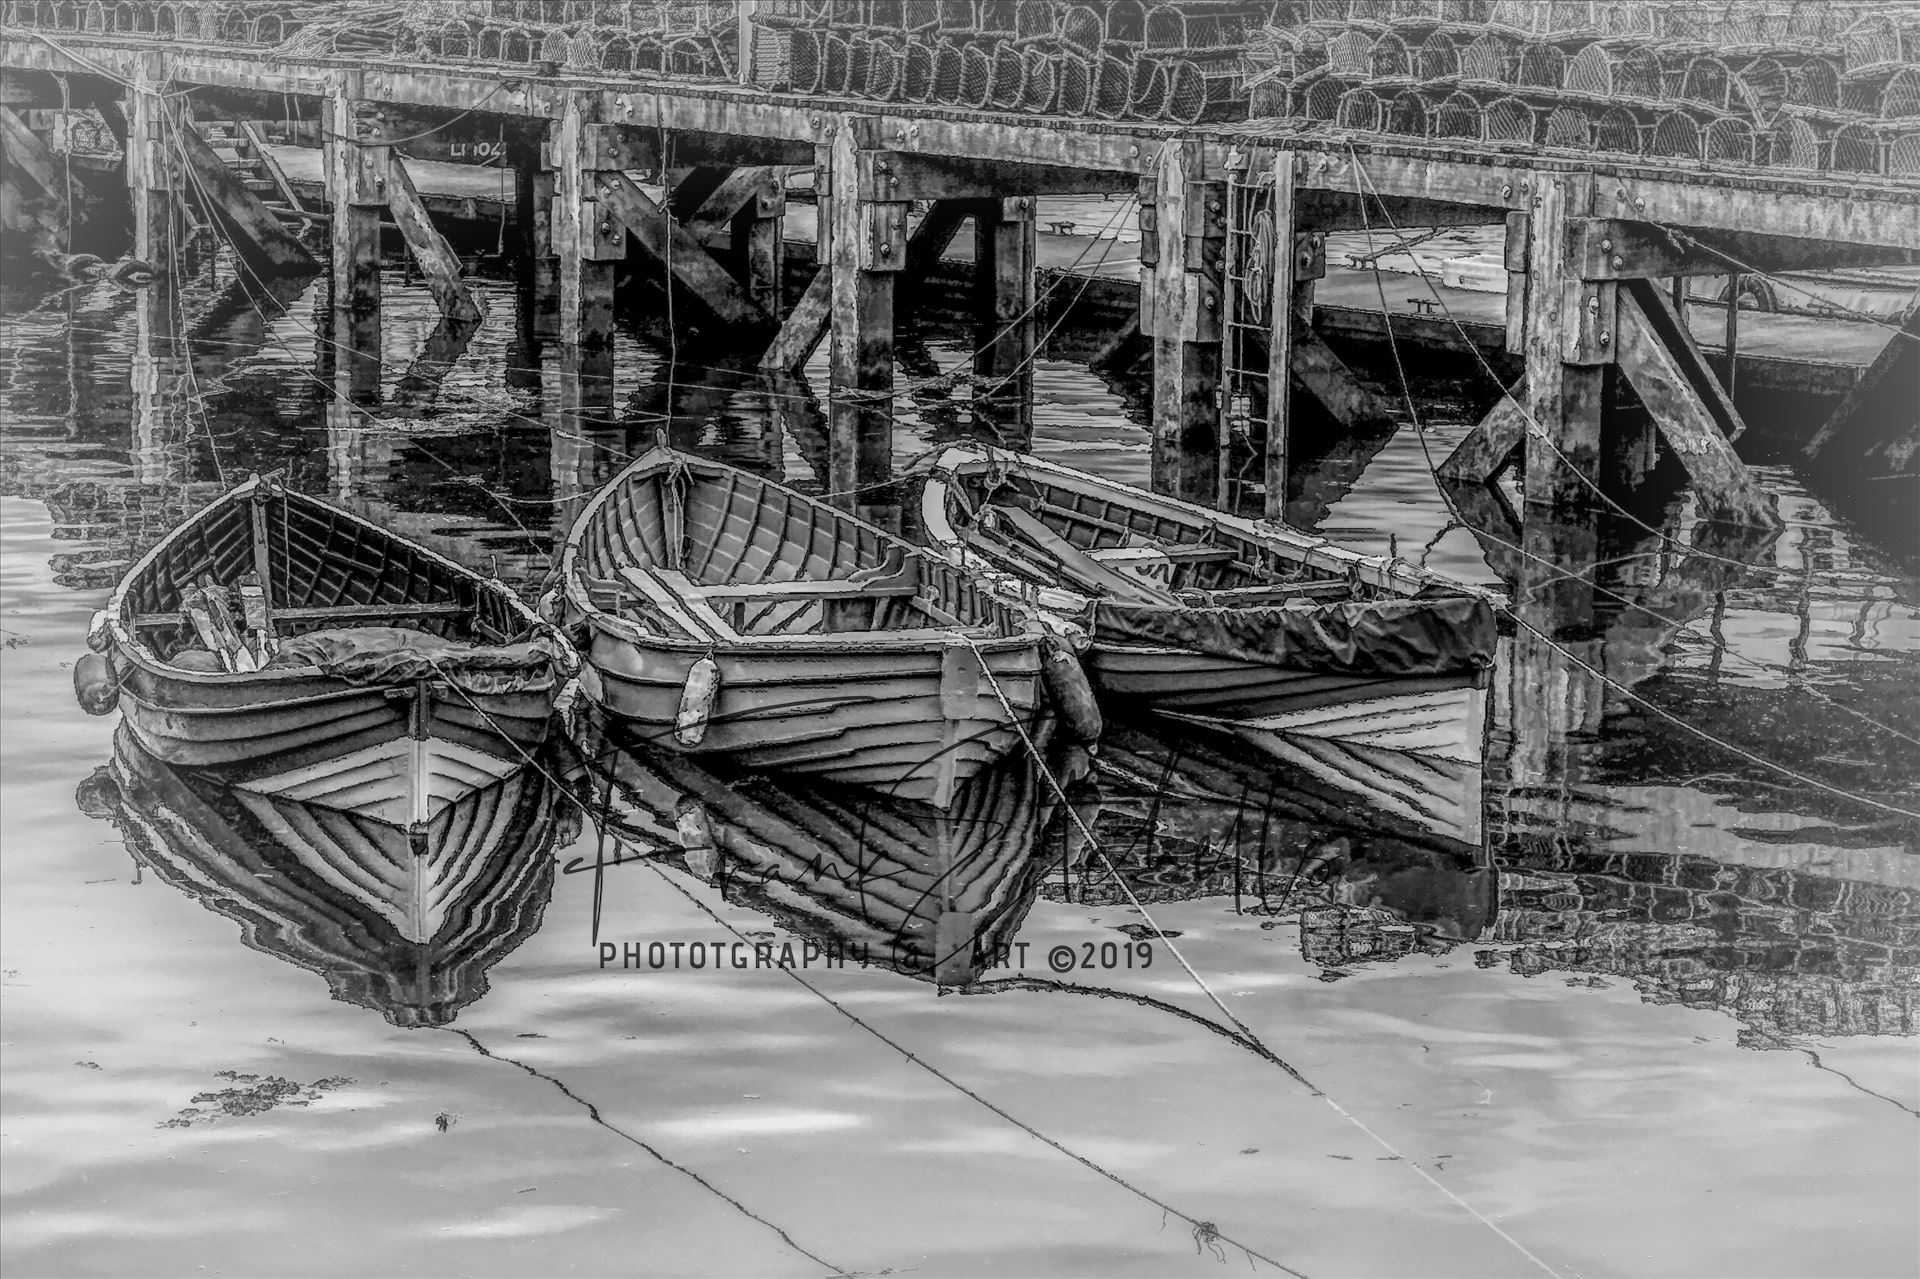 Tethered Boats, Whitby 1, Edit; Cartoon-BWII - On a trip to Whitby in Yorkshire in 2012 and a walk through the town brought us to the harbour quay side and these small tethered boats, their bows and ropes reflected in the sea water and lobster pots neatly in stacks on the walkway. 'Cartoon' BWii edit. by Frank Etchells Photography